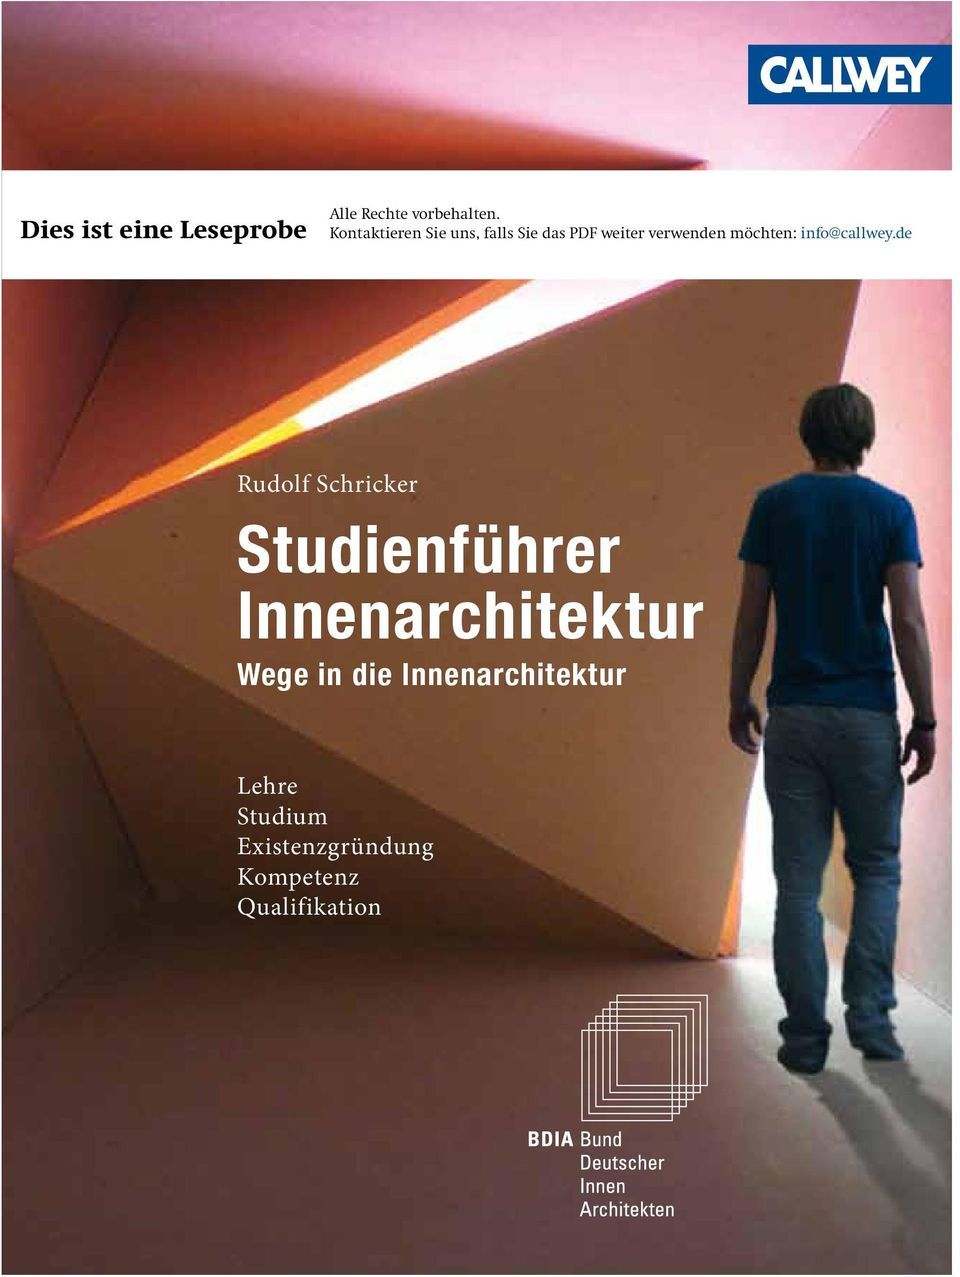 Studienf hrer innenarchitektur pdf for Lehre innenarchitektur